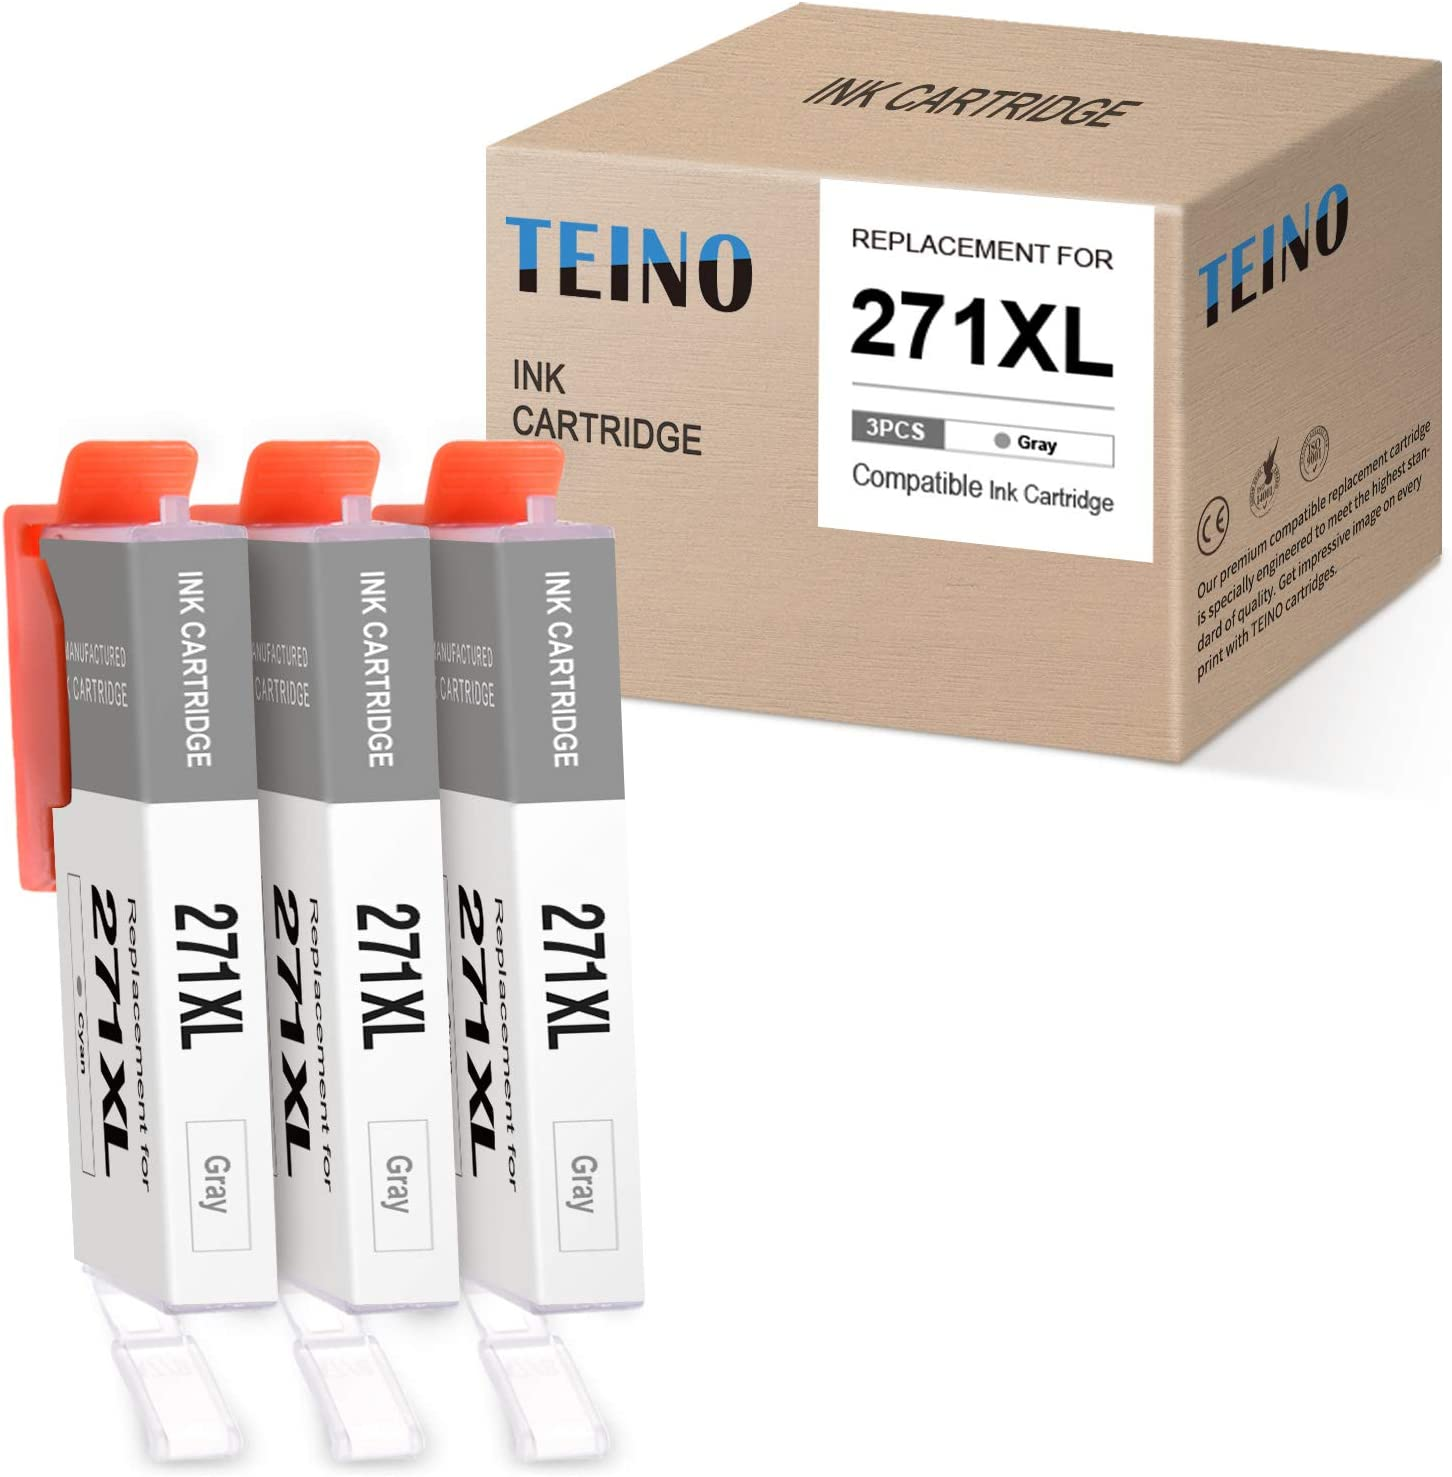 TEINO Compatible Ink Cartridge Replacement for Canon CLI-271XL CLI 271 XL use with Canon PIXIMA MG6821 MG7720 TS6020 TS5020 TS9020 MG6820 MG5720 TS8020 MG5722 MG5721 MG6822 (Gray, 3-Pack)